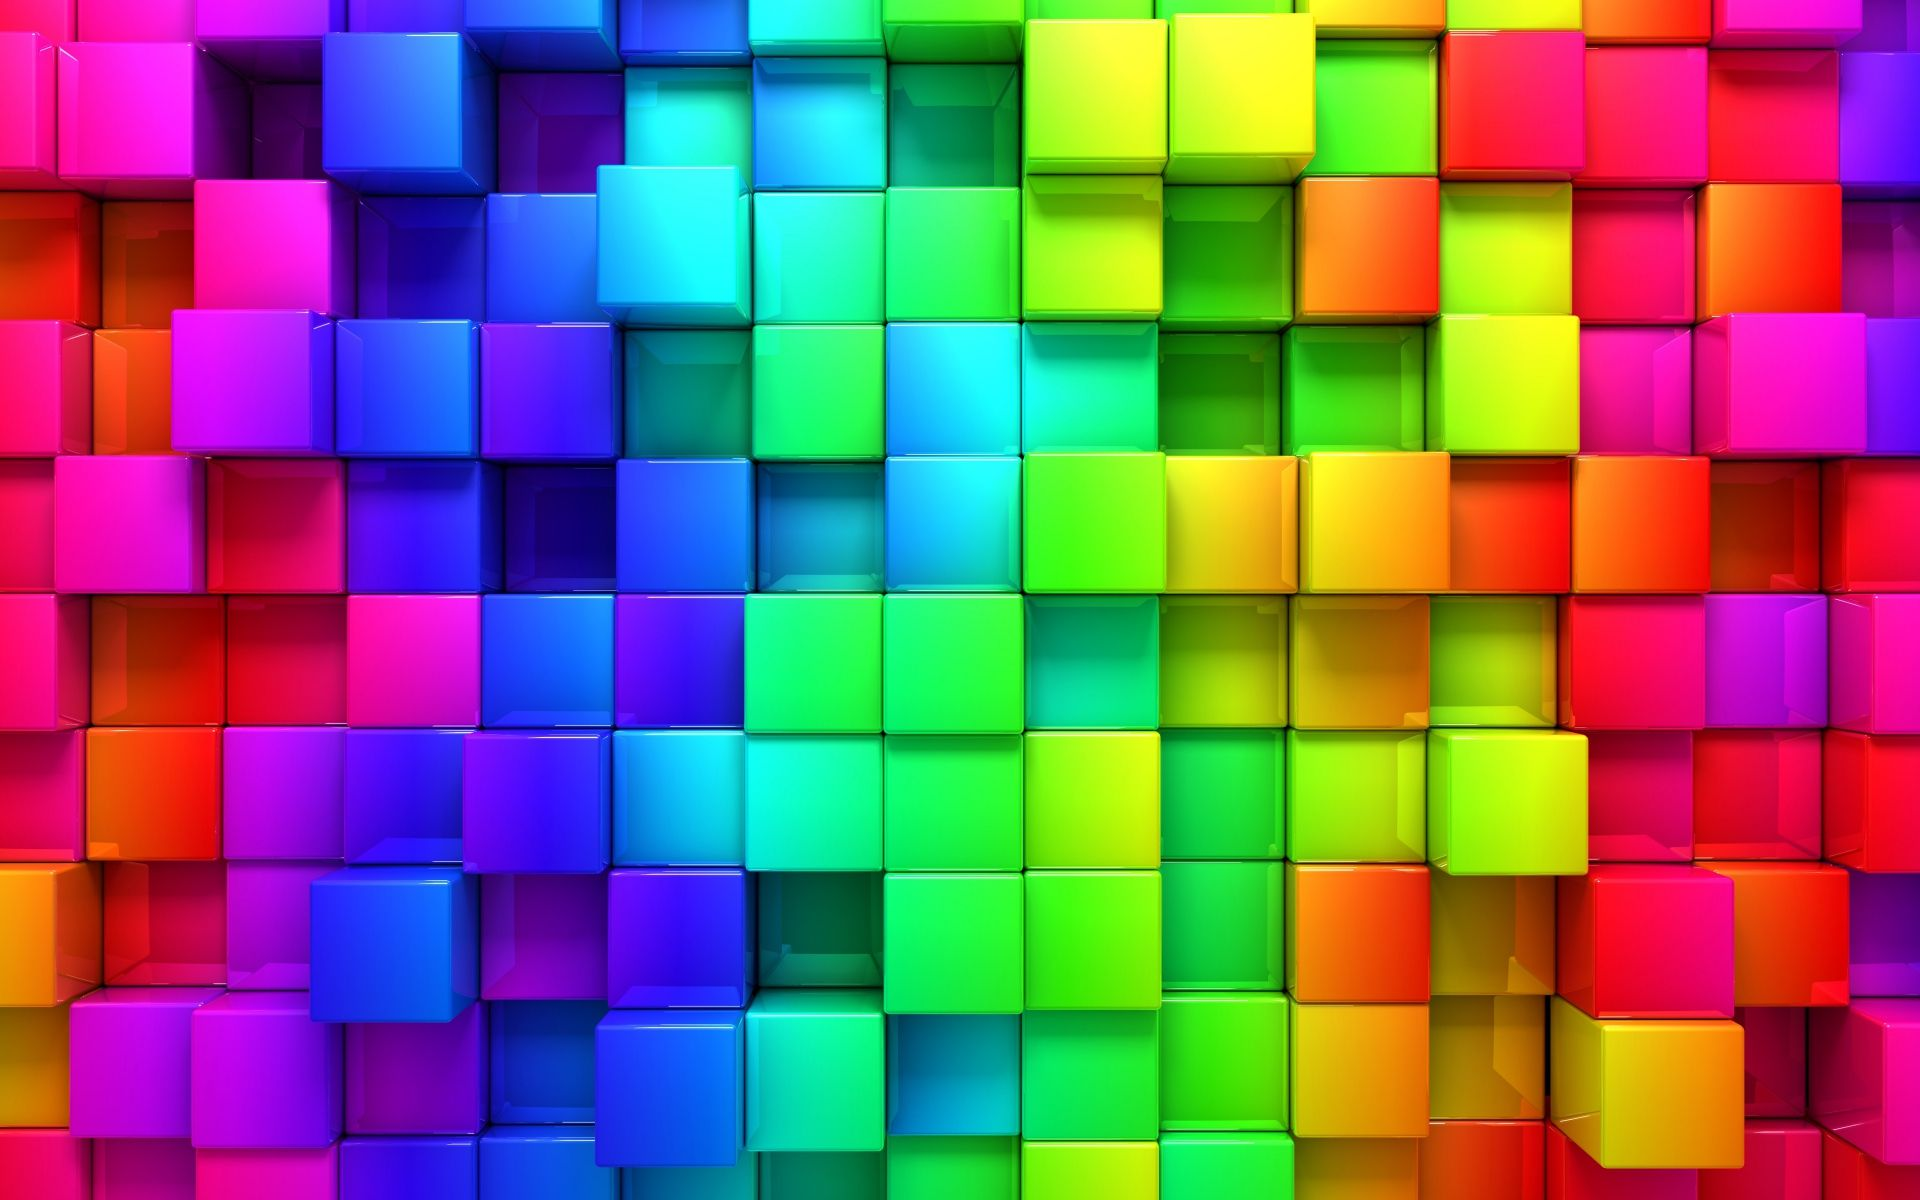 colorful wallpaper background | wallpaper | pinterest | colorful